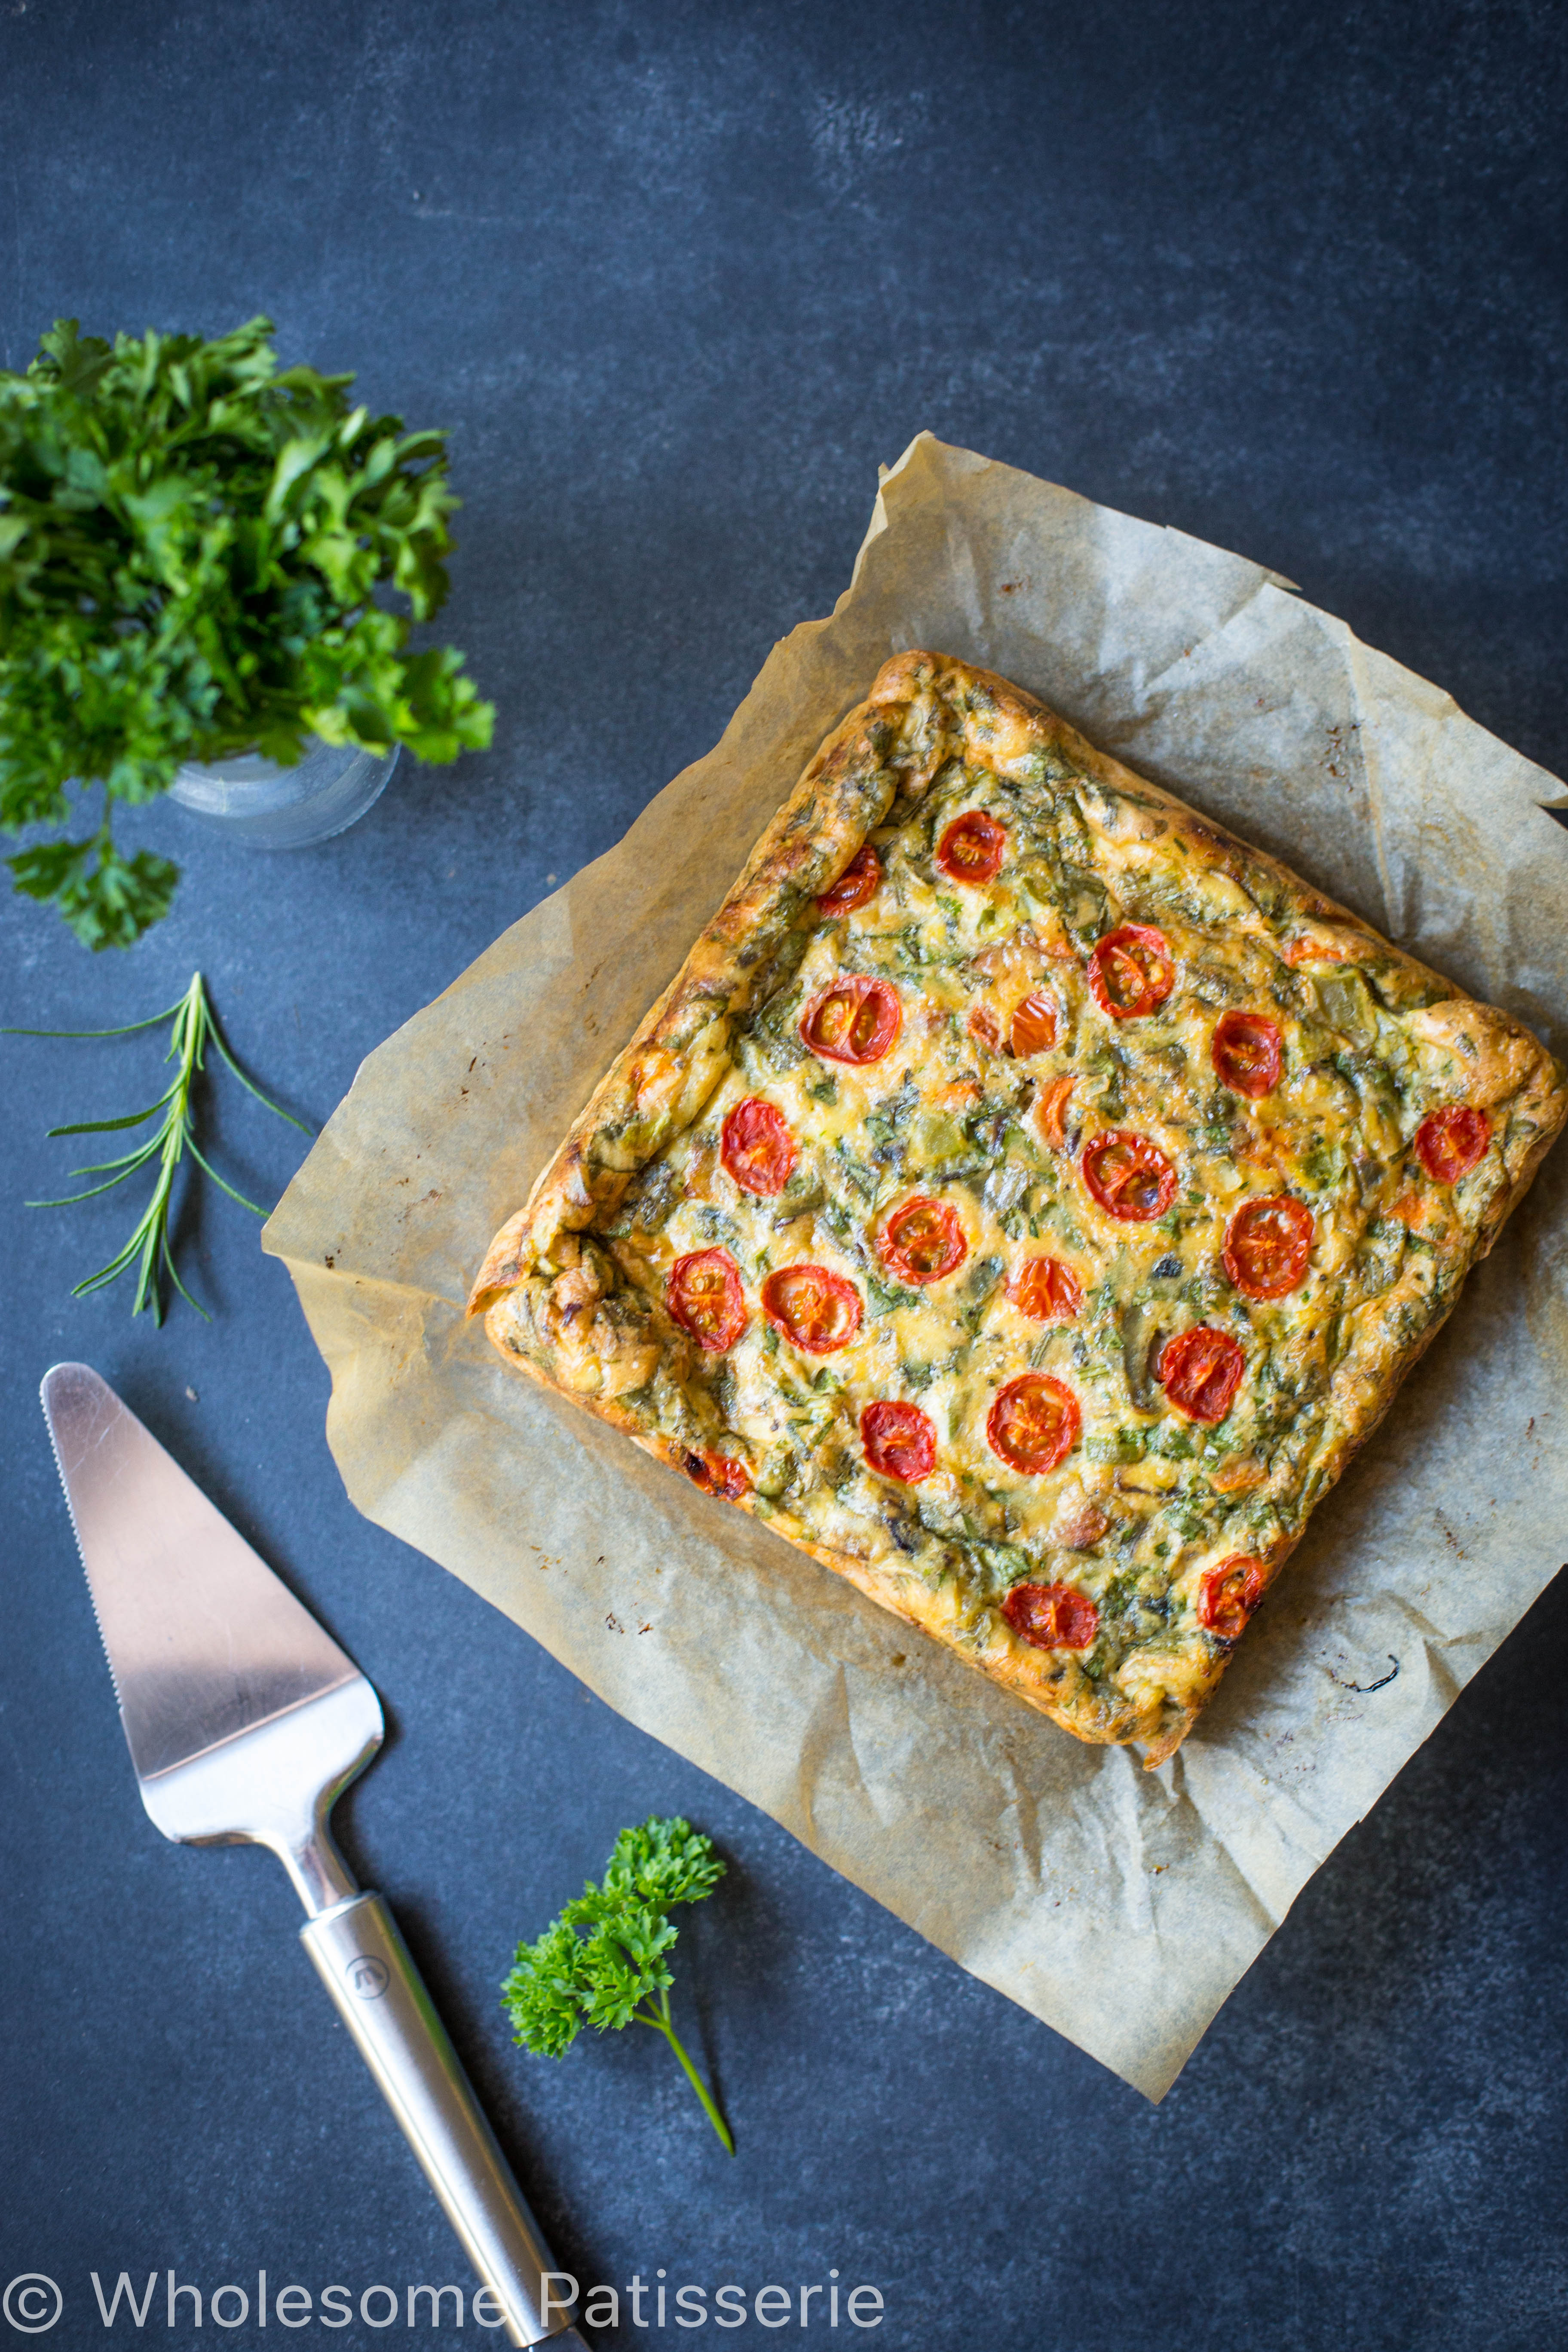 quiche-gluten-free-vegetable-quiche-simple-delicious-amazing-eggs